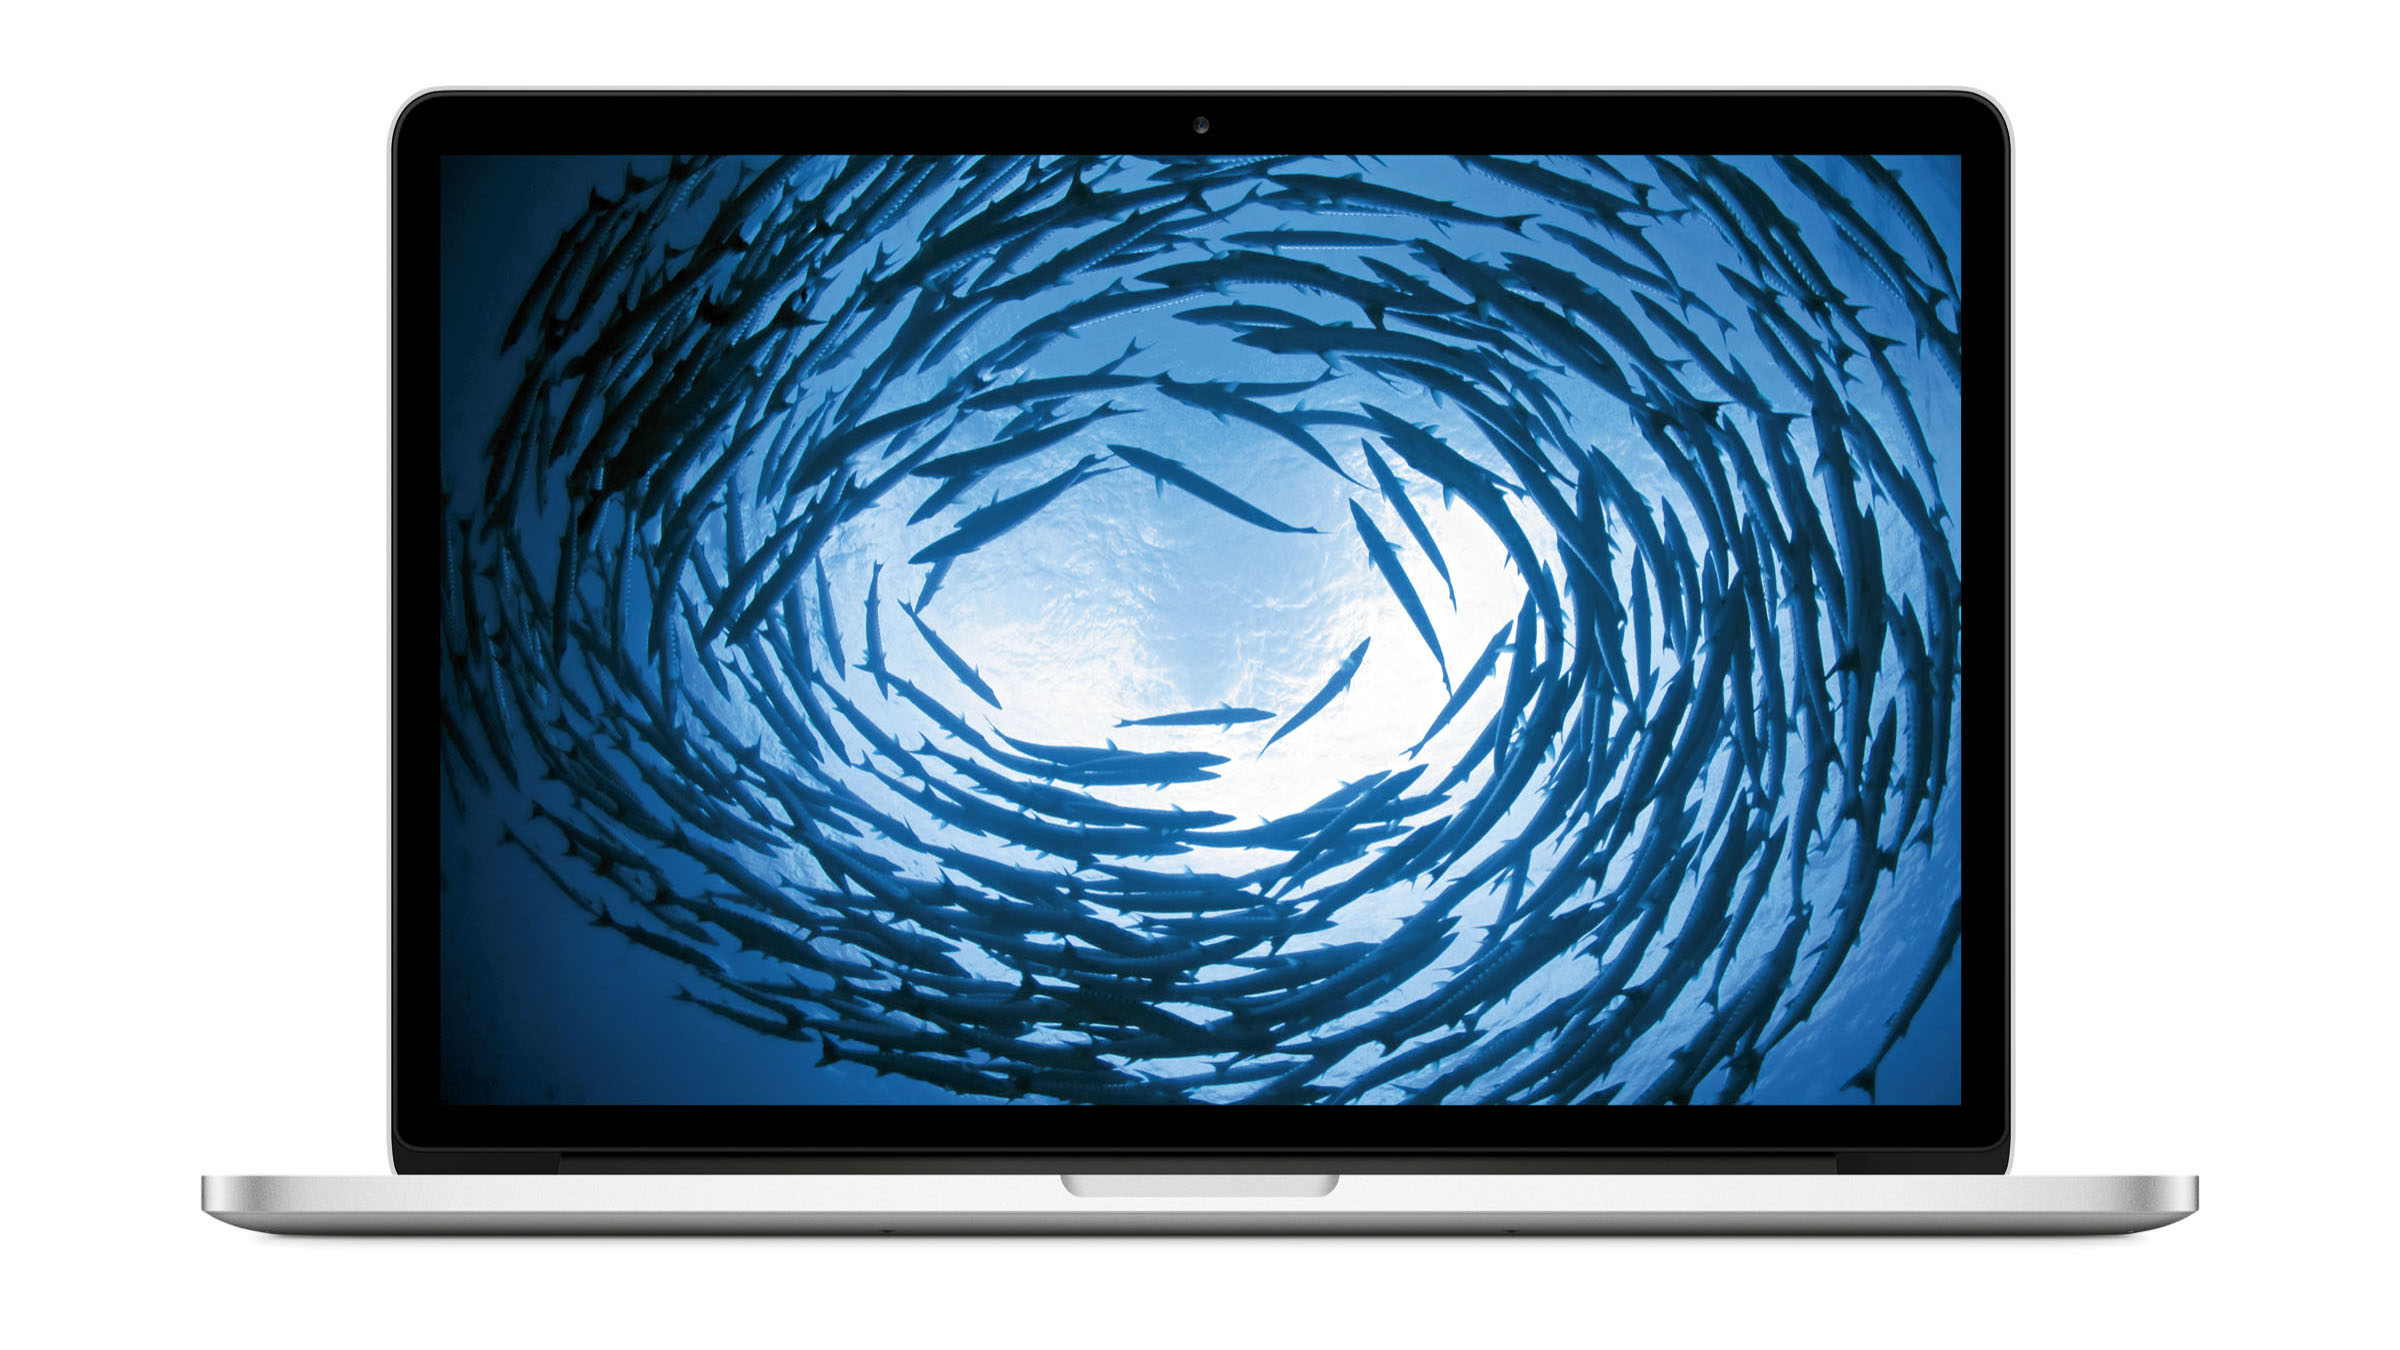 MacBook Pro 15 Inch With Retina Display